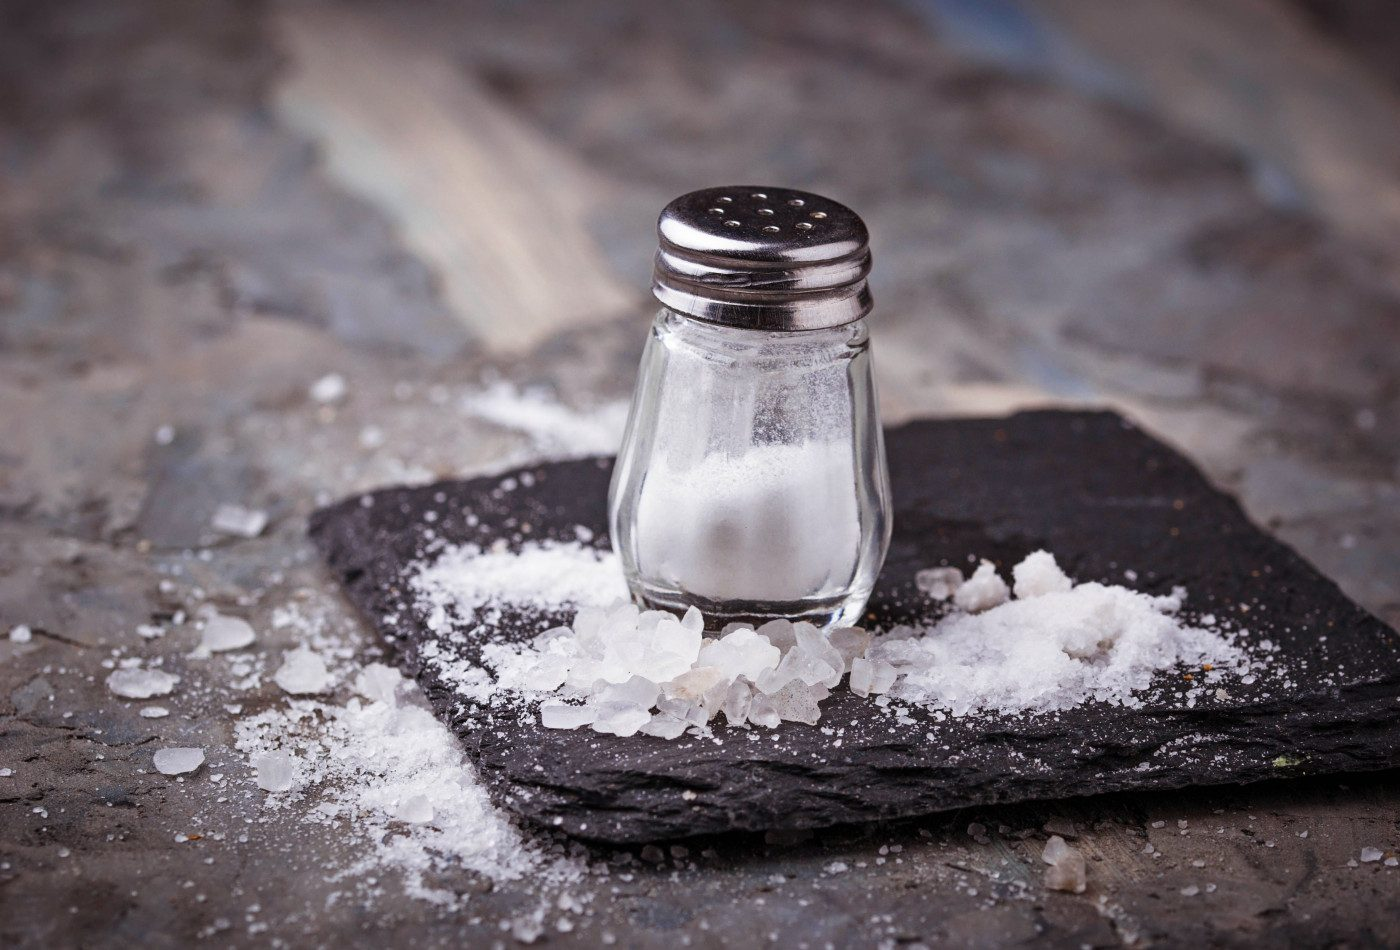 Excessive Salt Consumption Leads to Cognitive Impairment, MS Mouse Study Shows